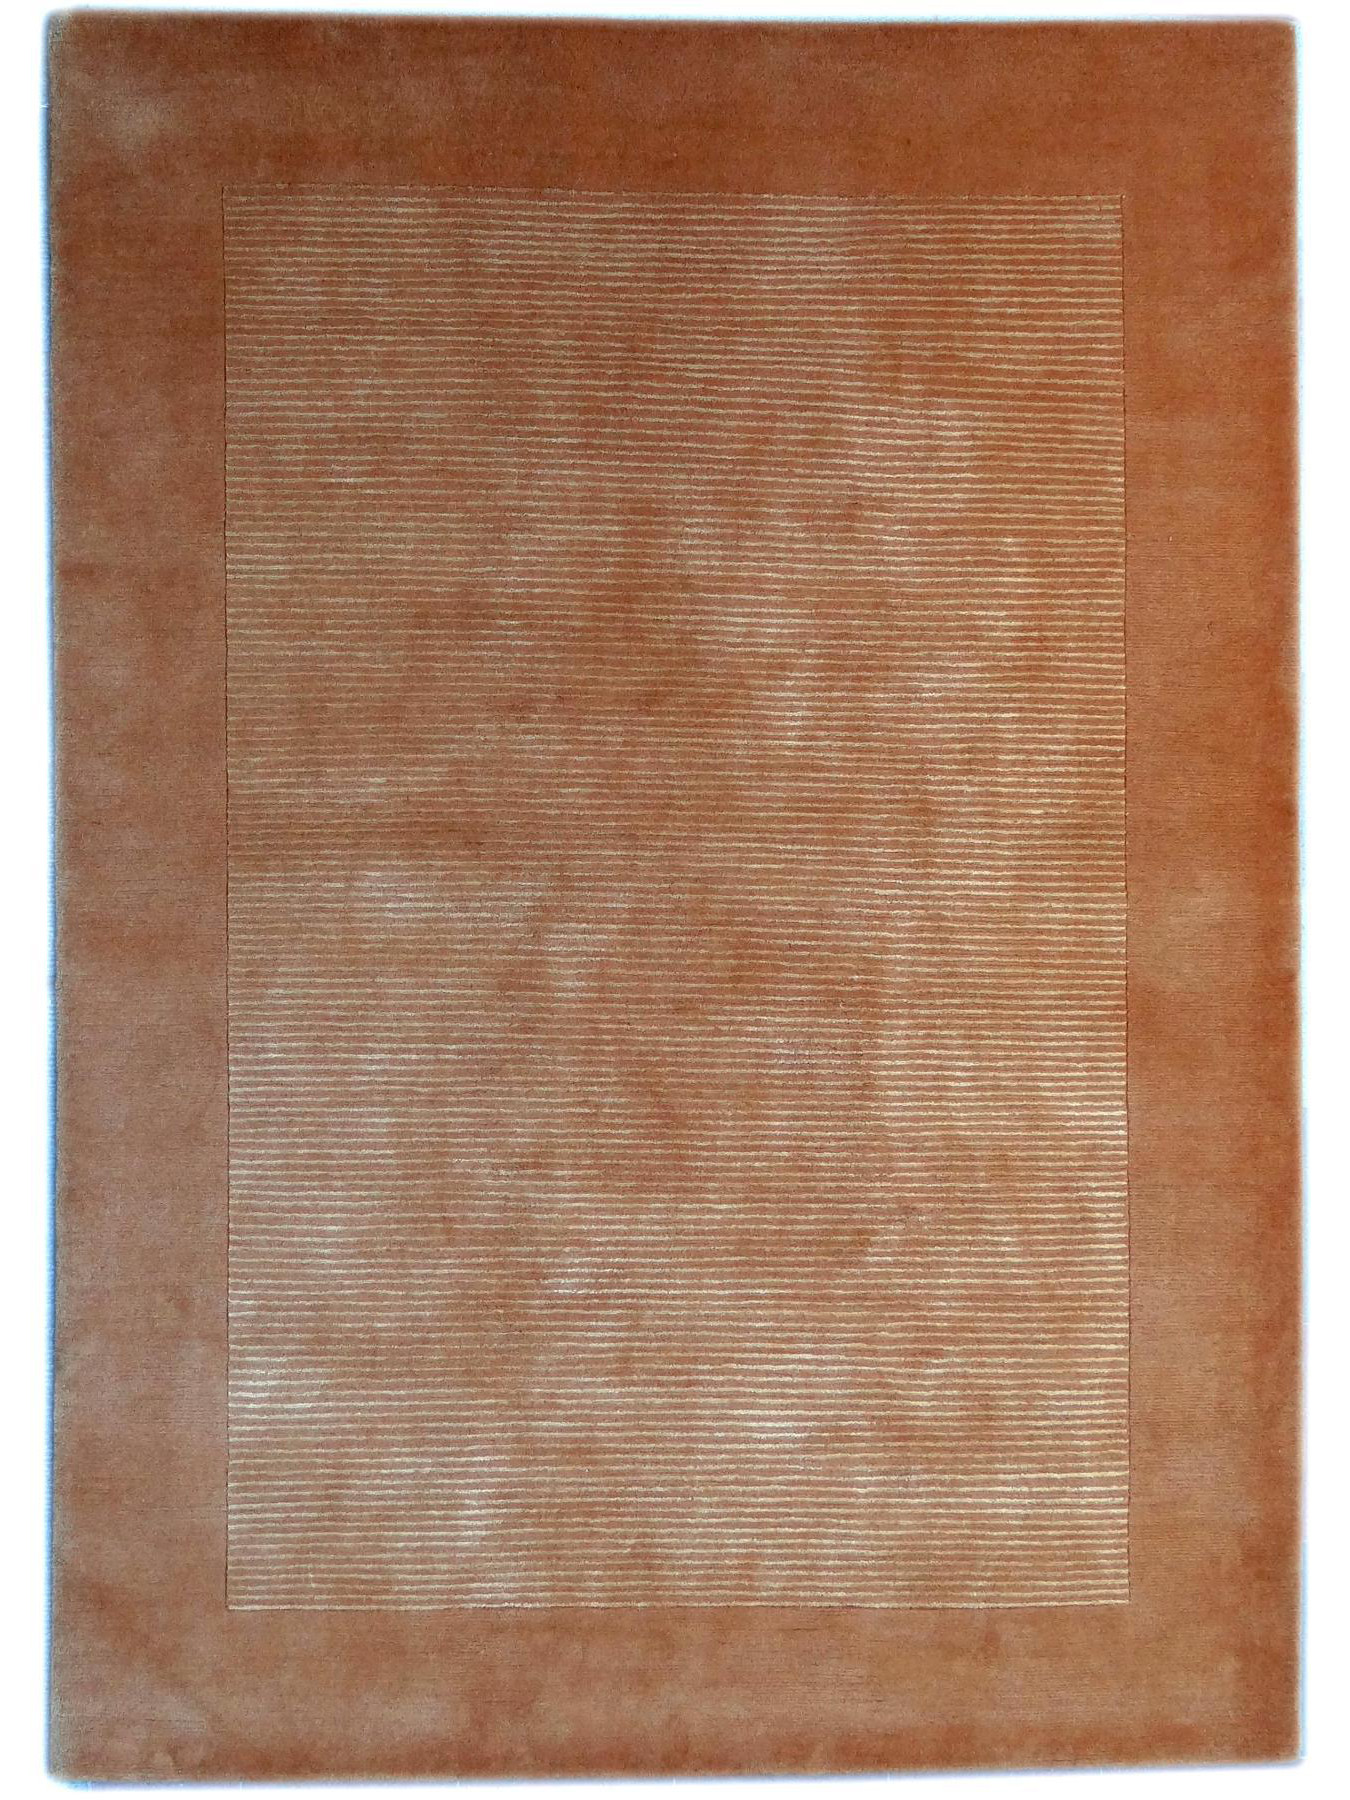 Carpets with borders - BAGUETTES - S2202